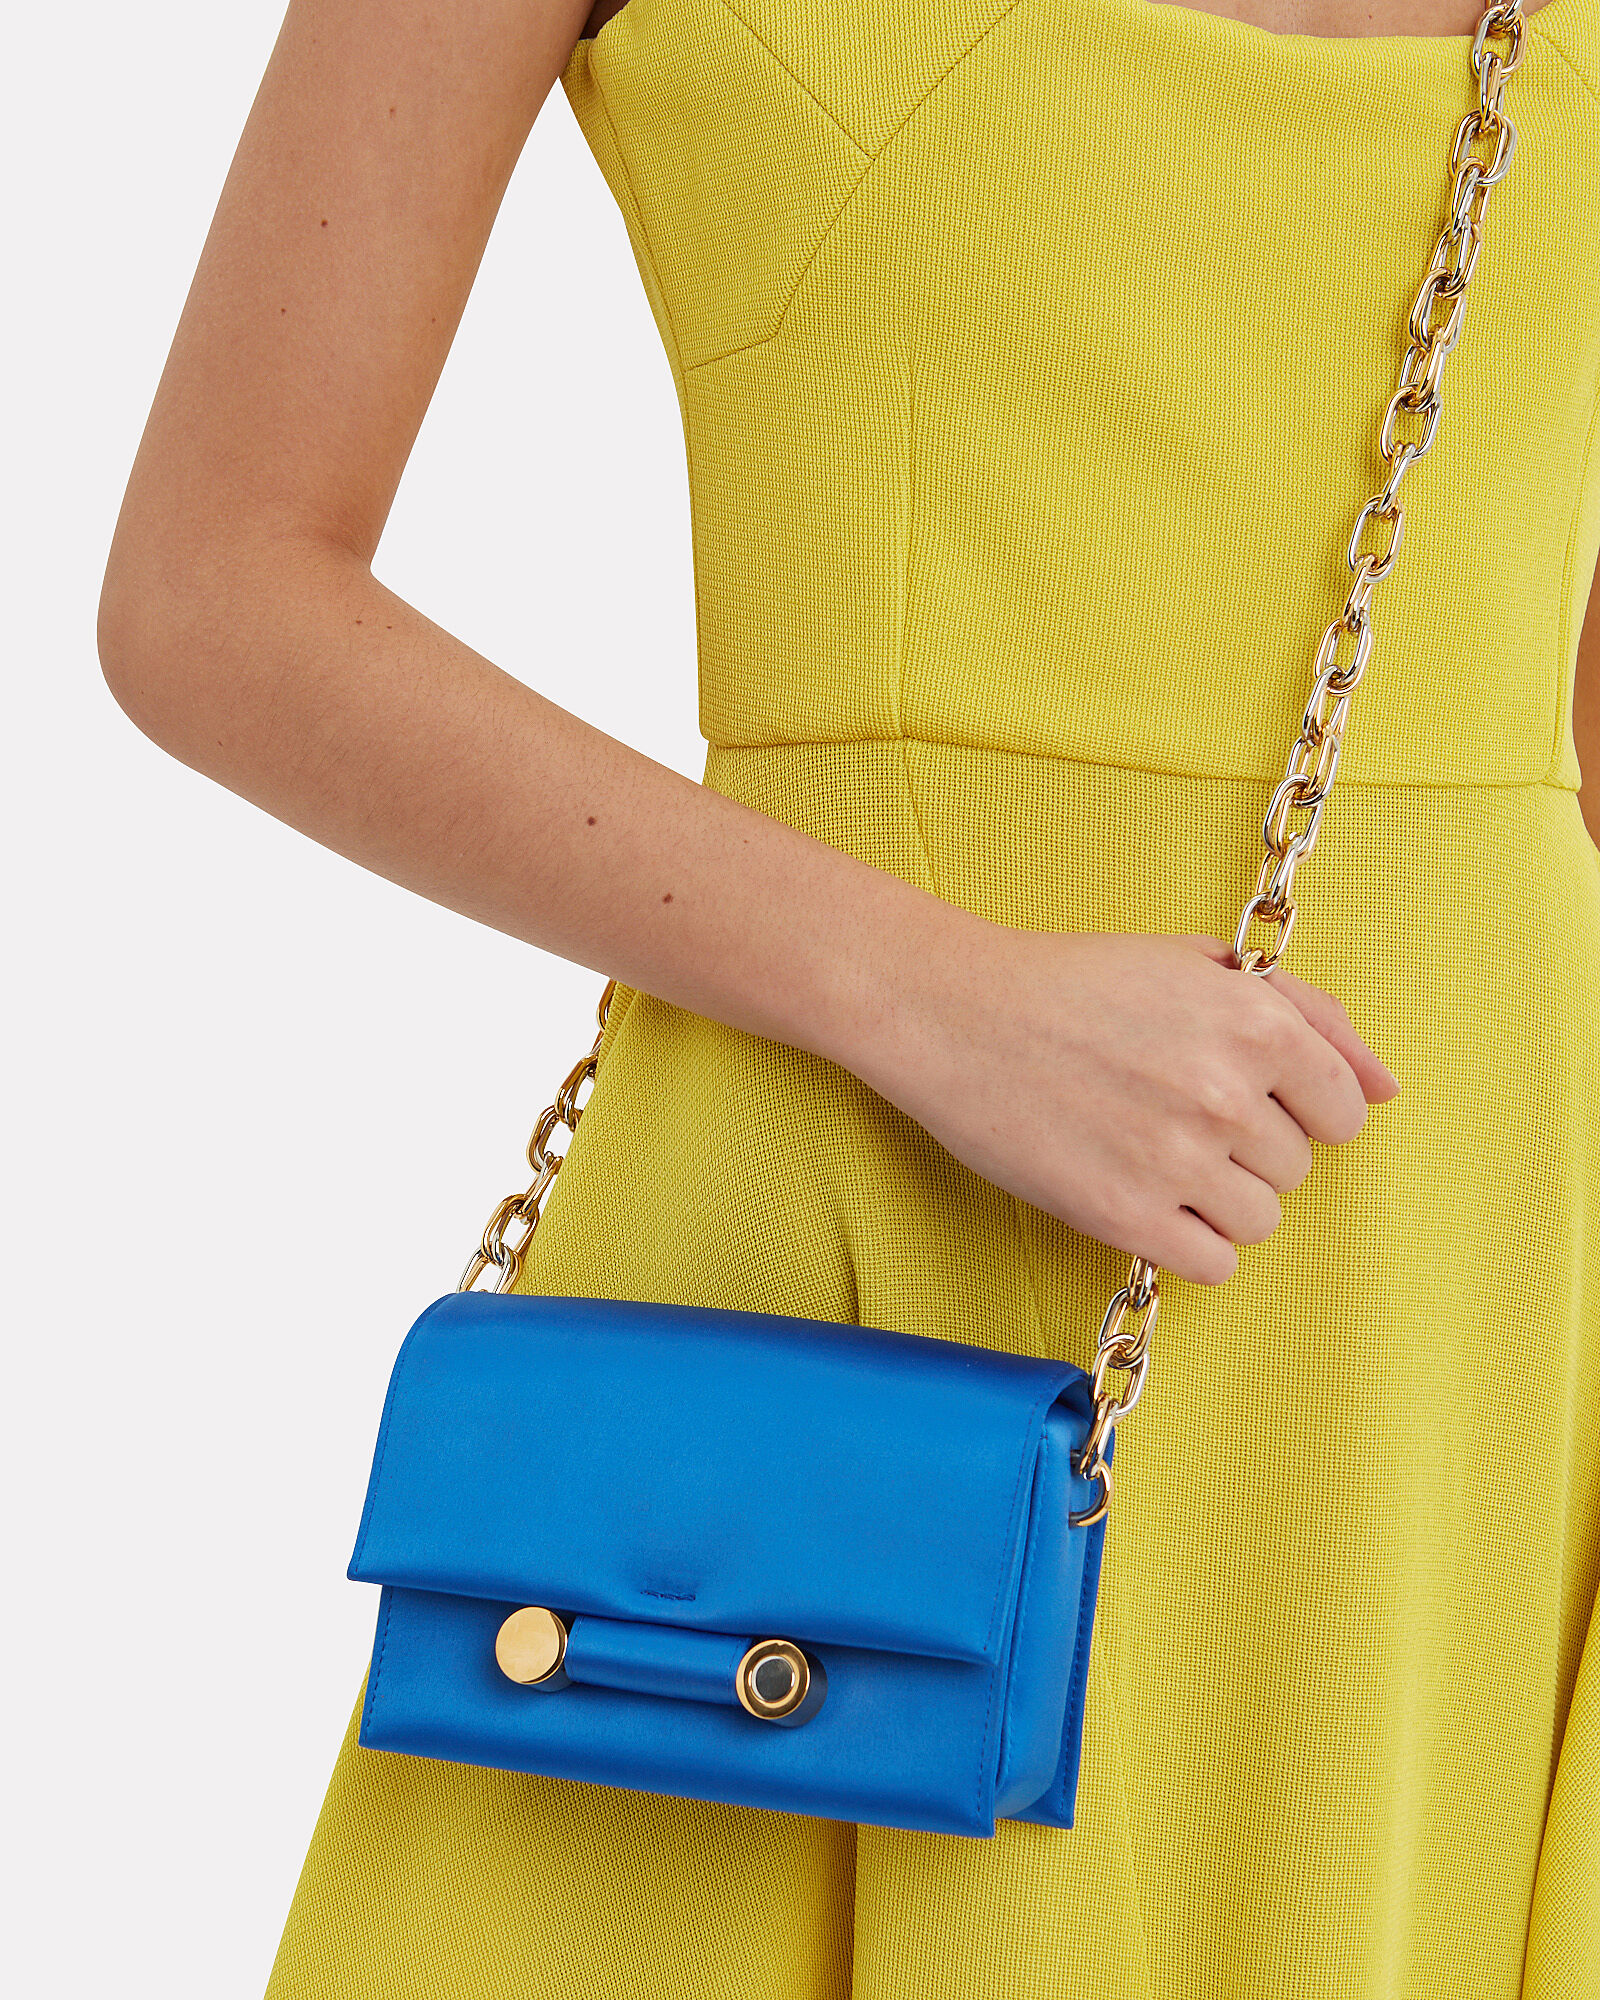 Caddy Satin Crossbody, BLUE, hi-res